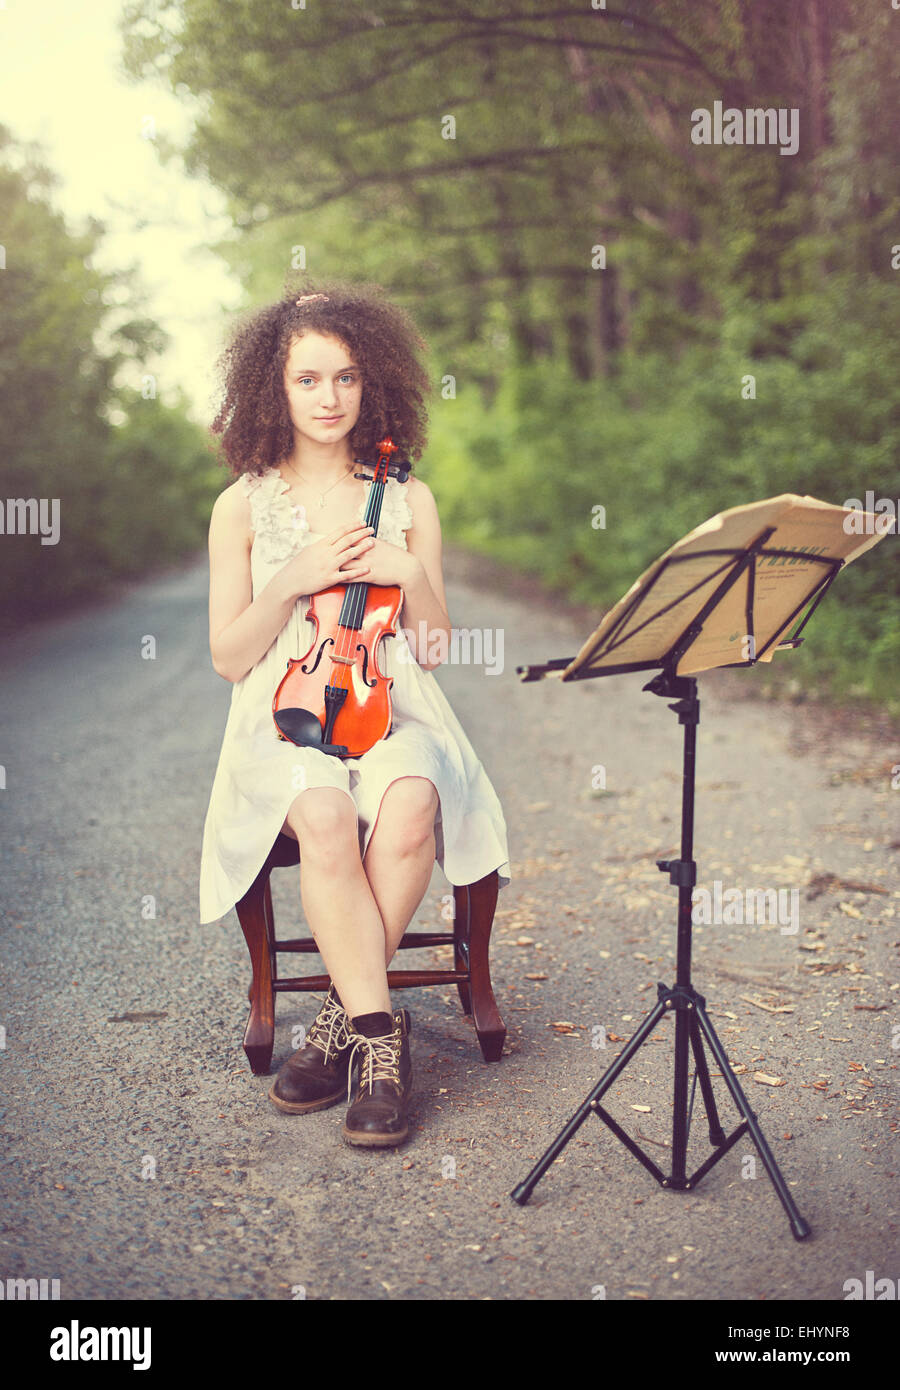 Portrait of a young woman sitting with her violin - Stock Image